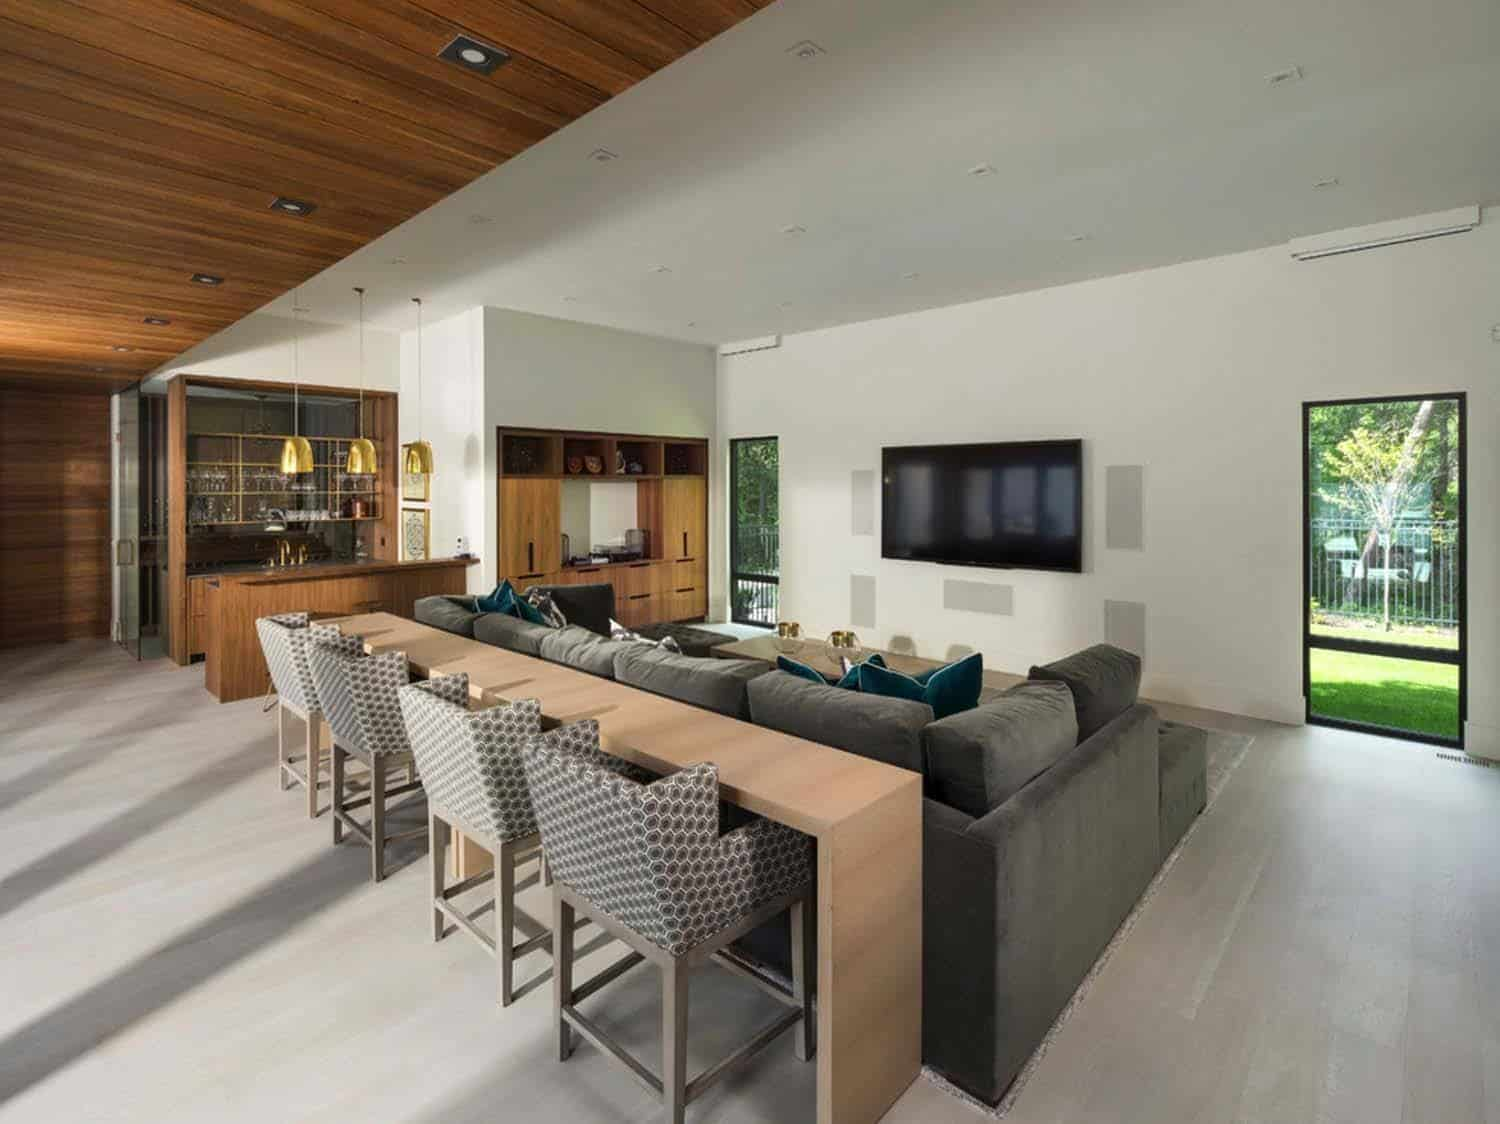 Modern-Residence-Think Architecture-26-1 Kindesign